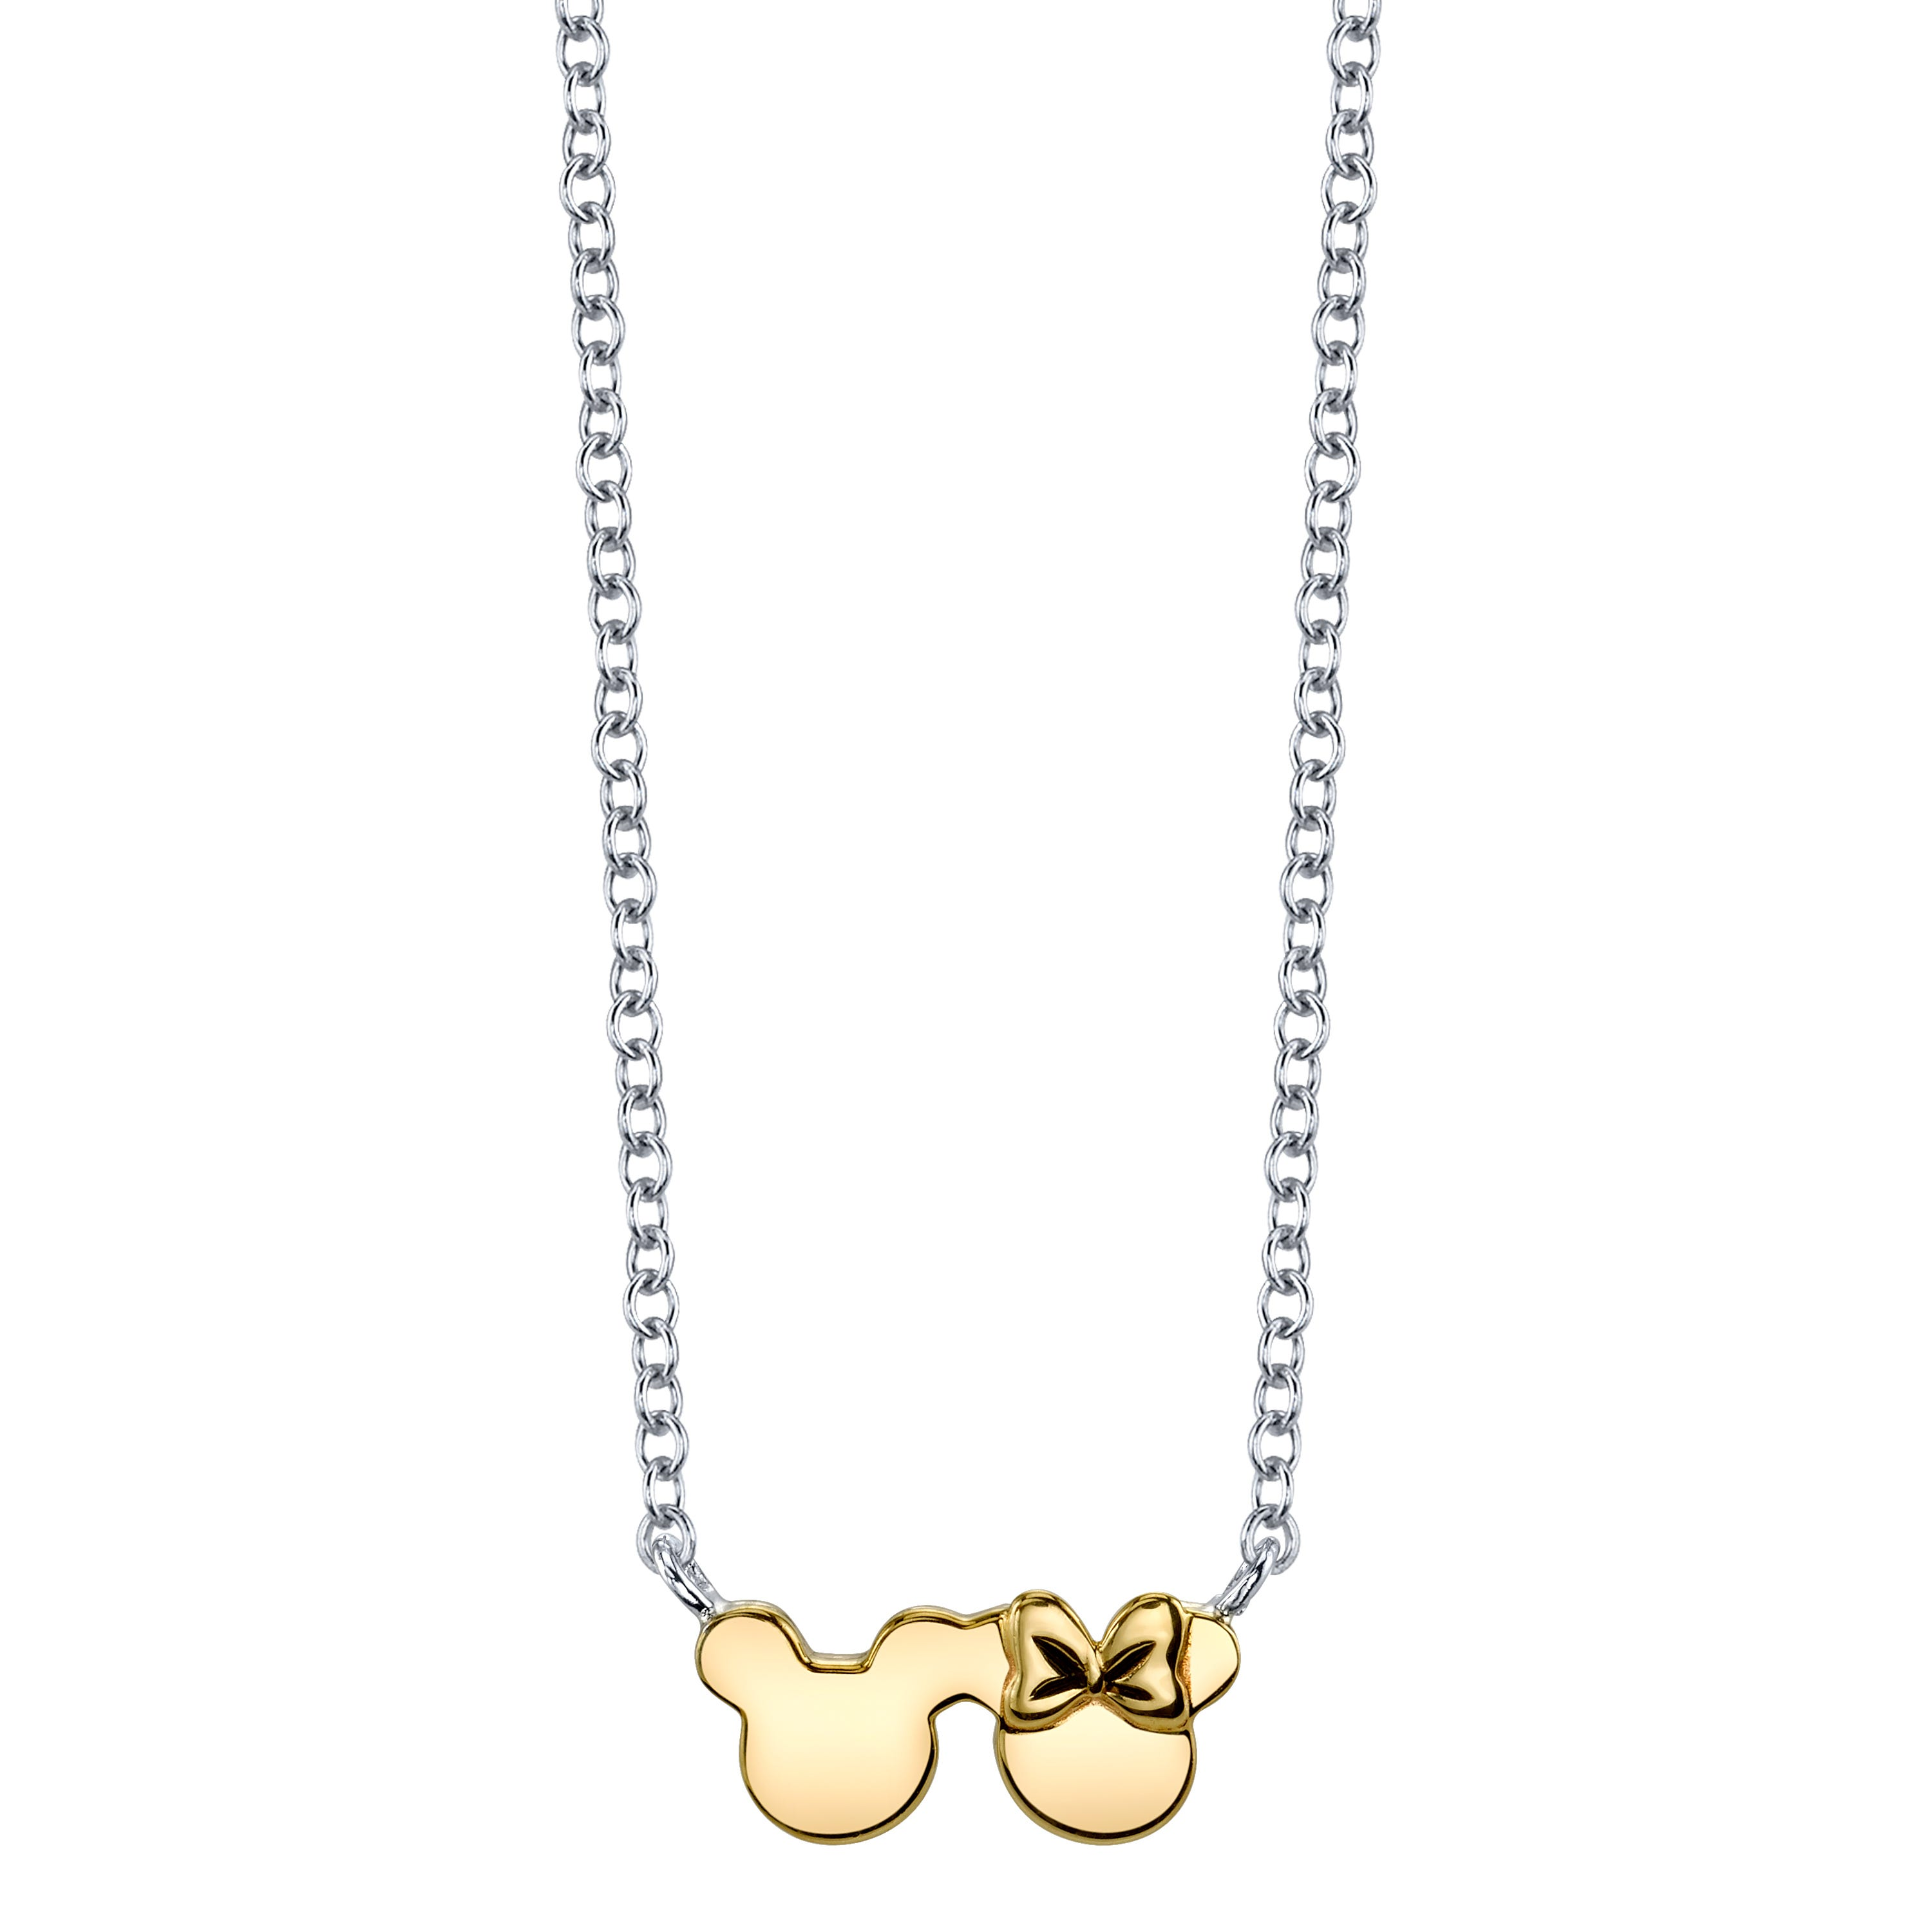 DISNEY© Mickey & Minnie Mouse Necklace in 10k Yellow Gold